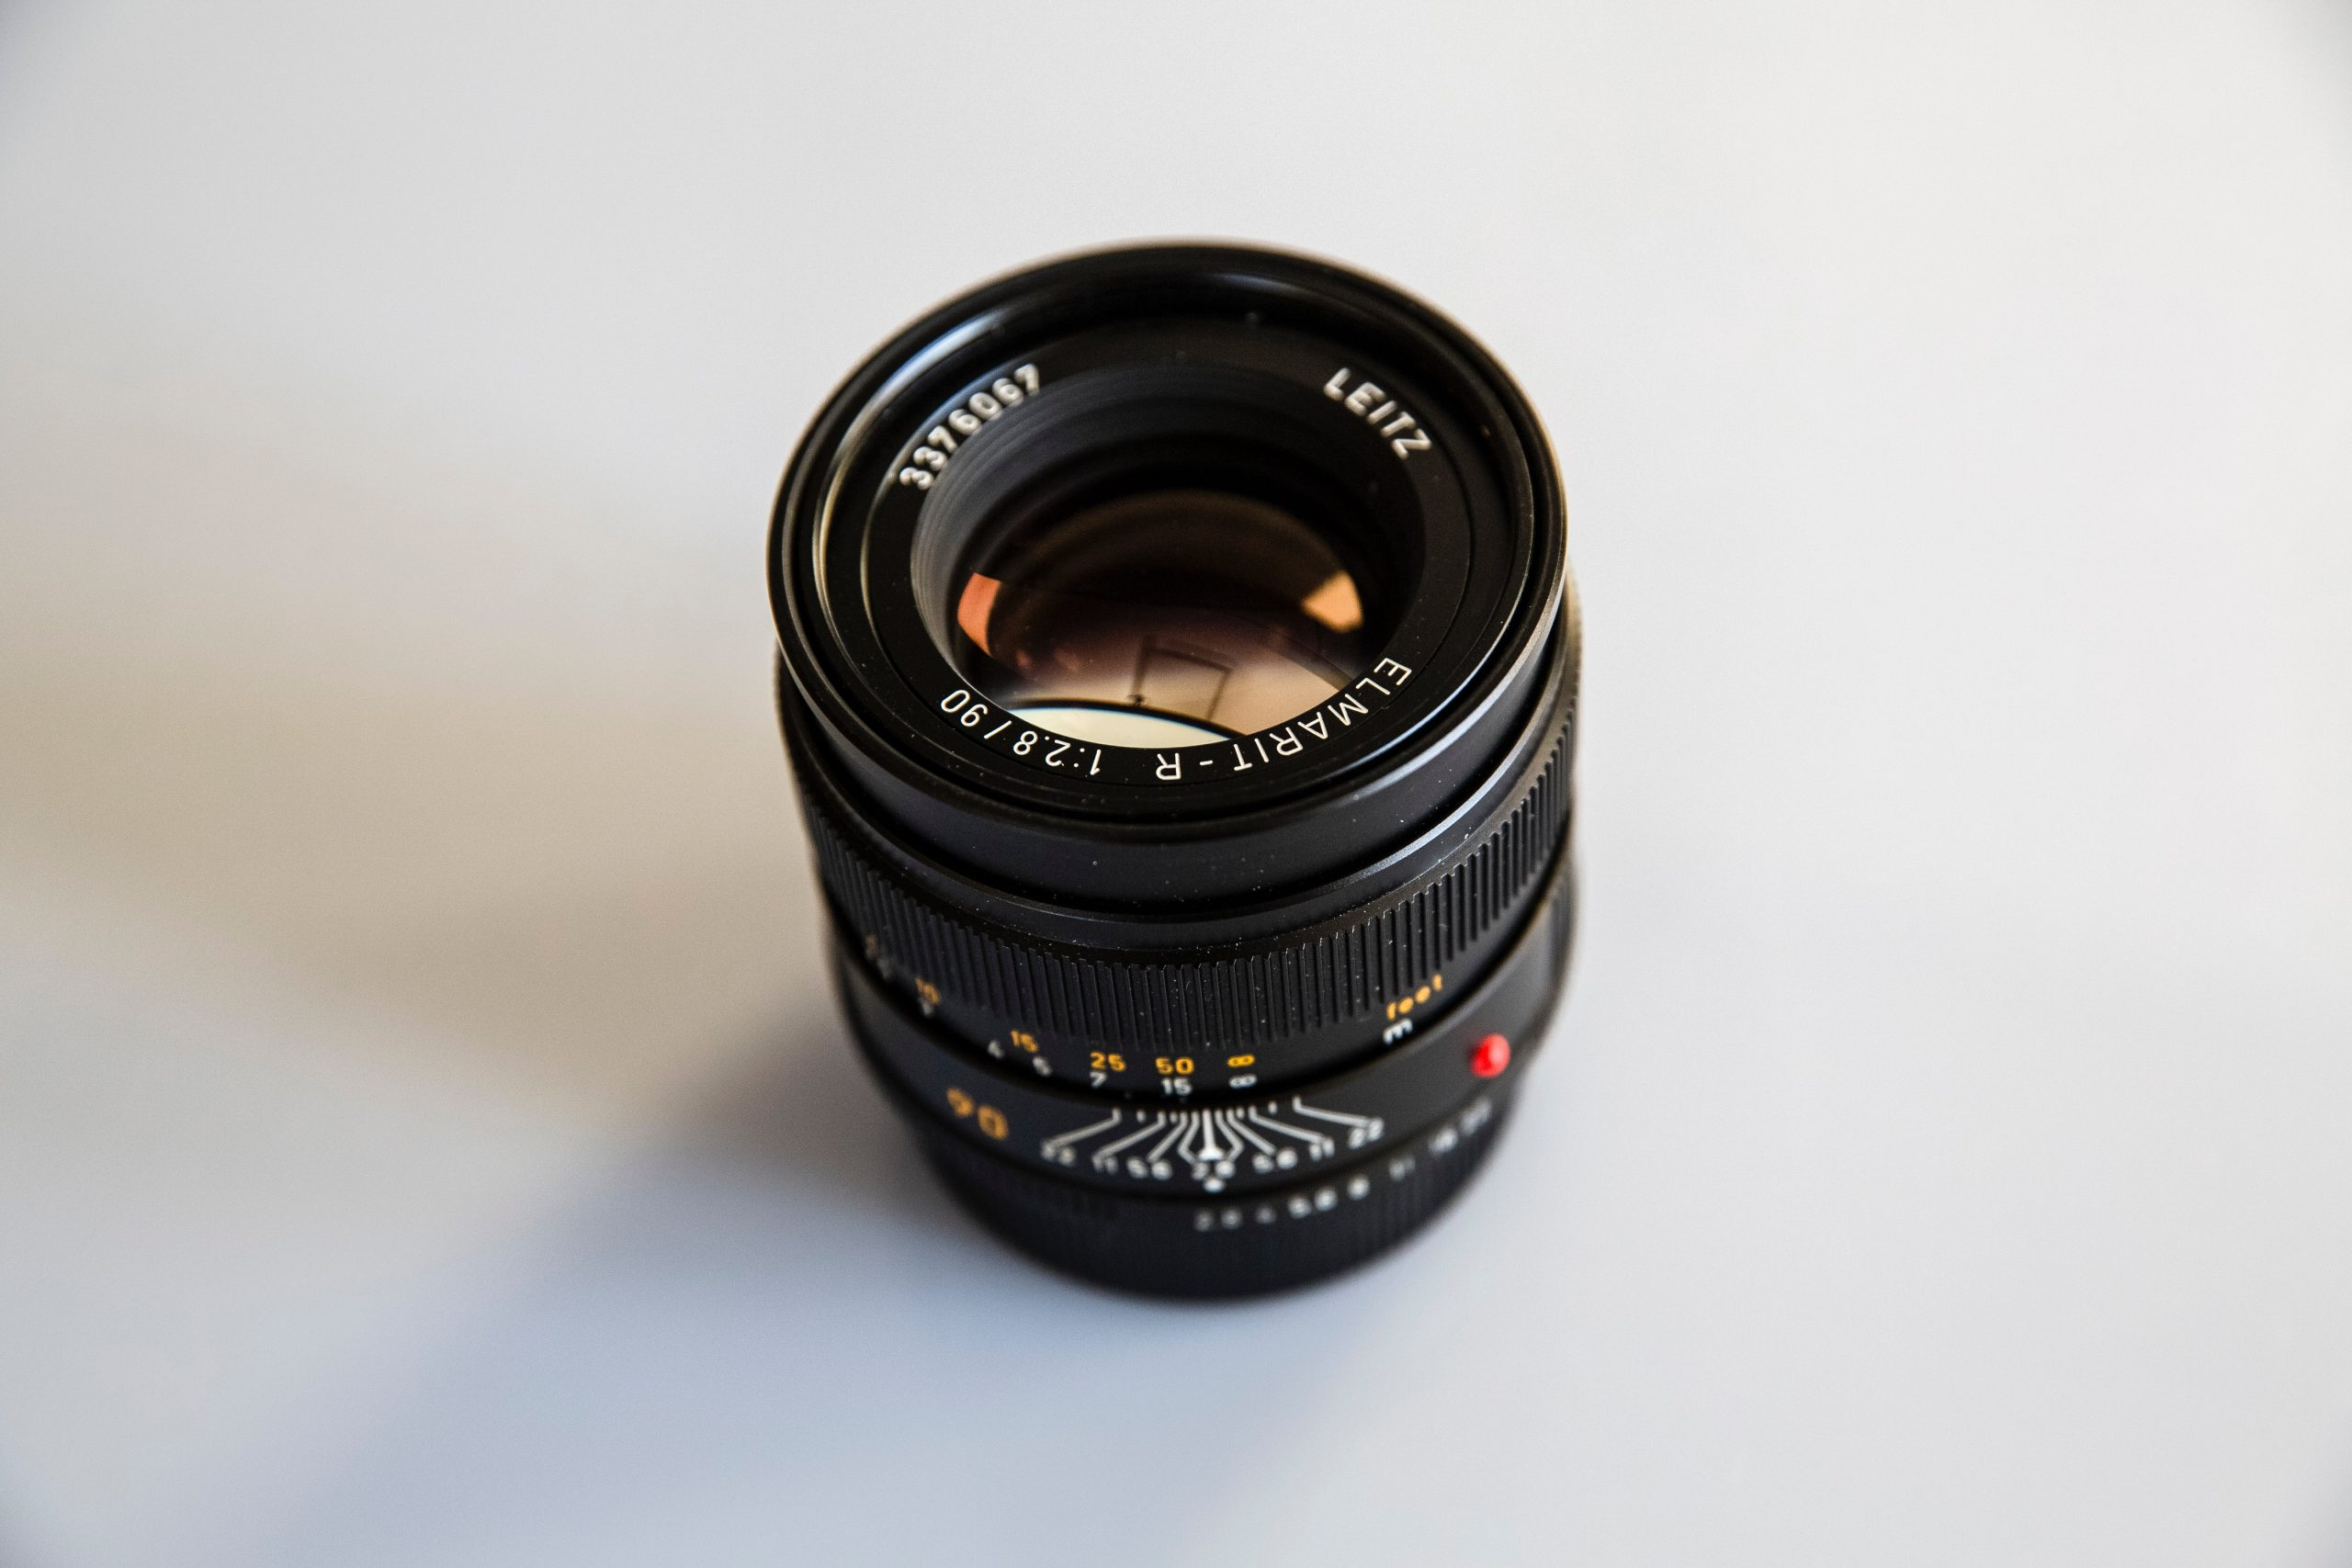 zoom lens with white background